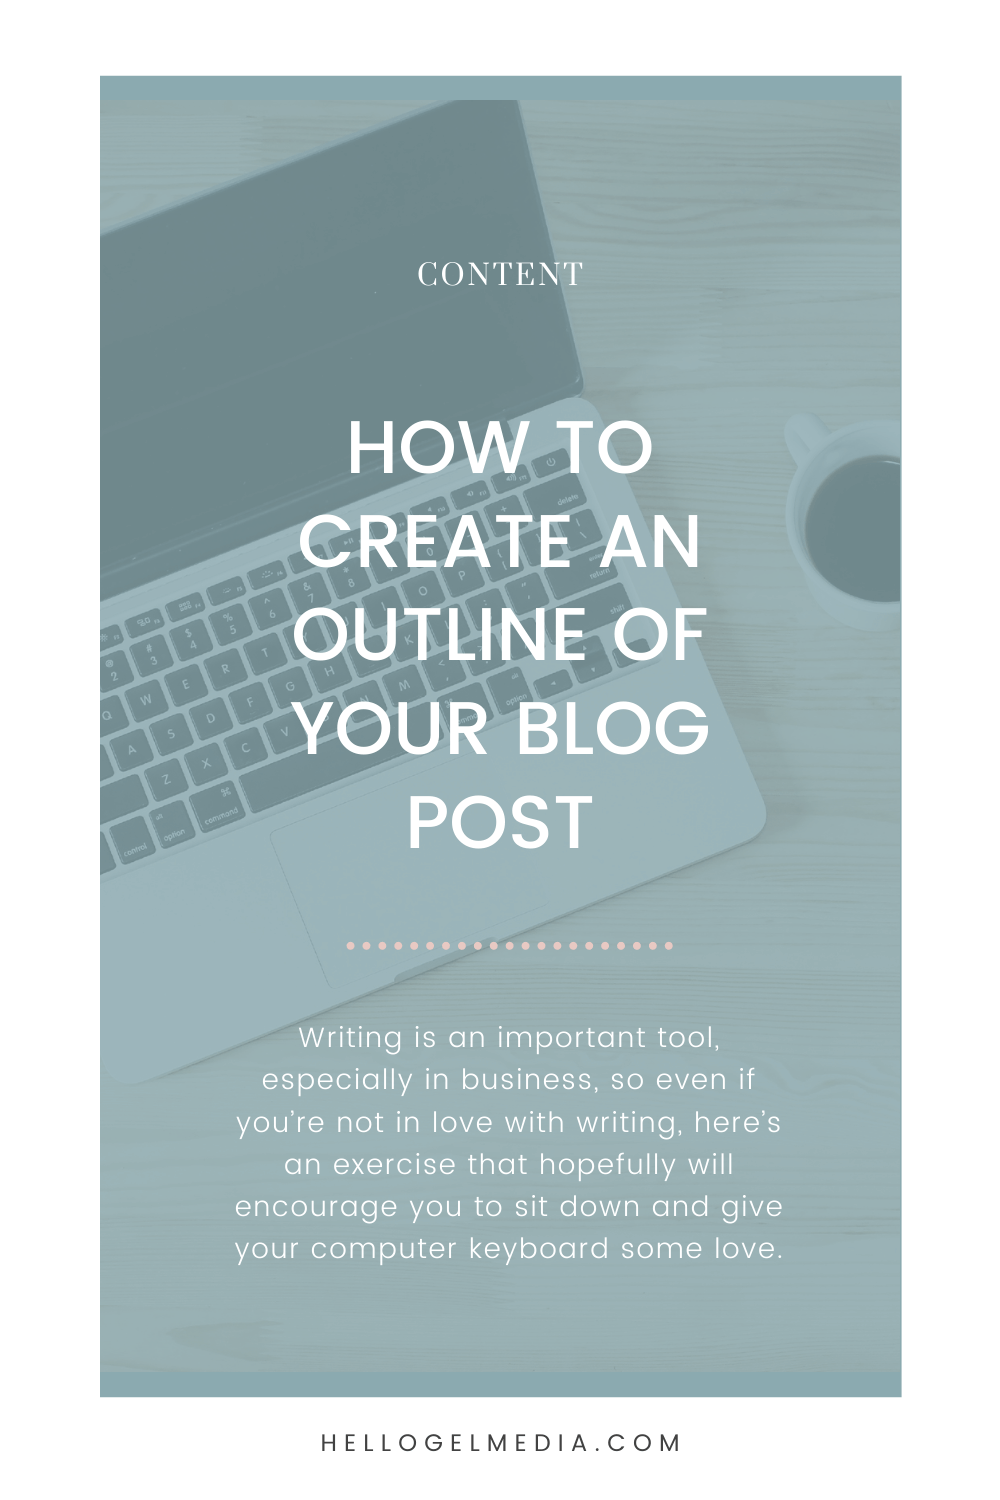 How to Create An Outline of Your Blog Post